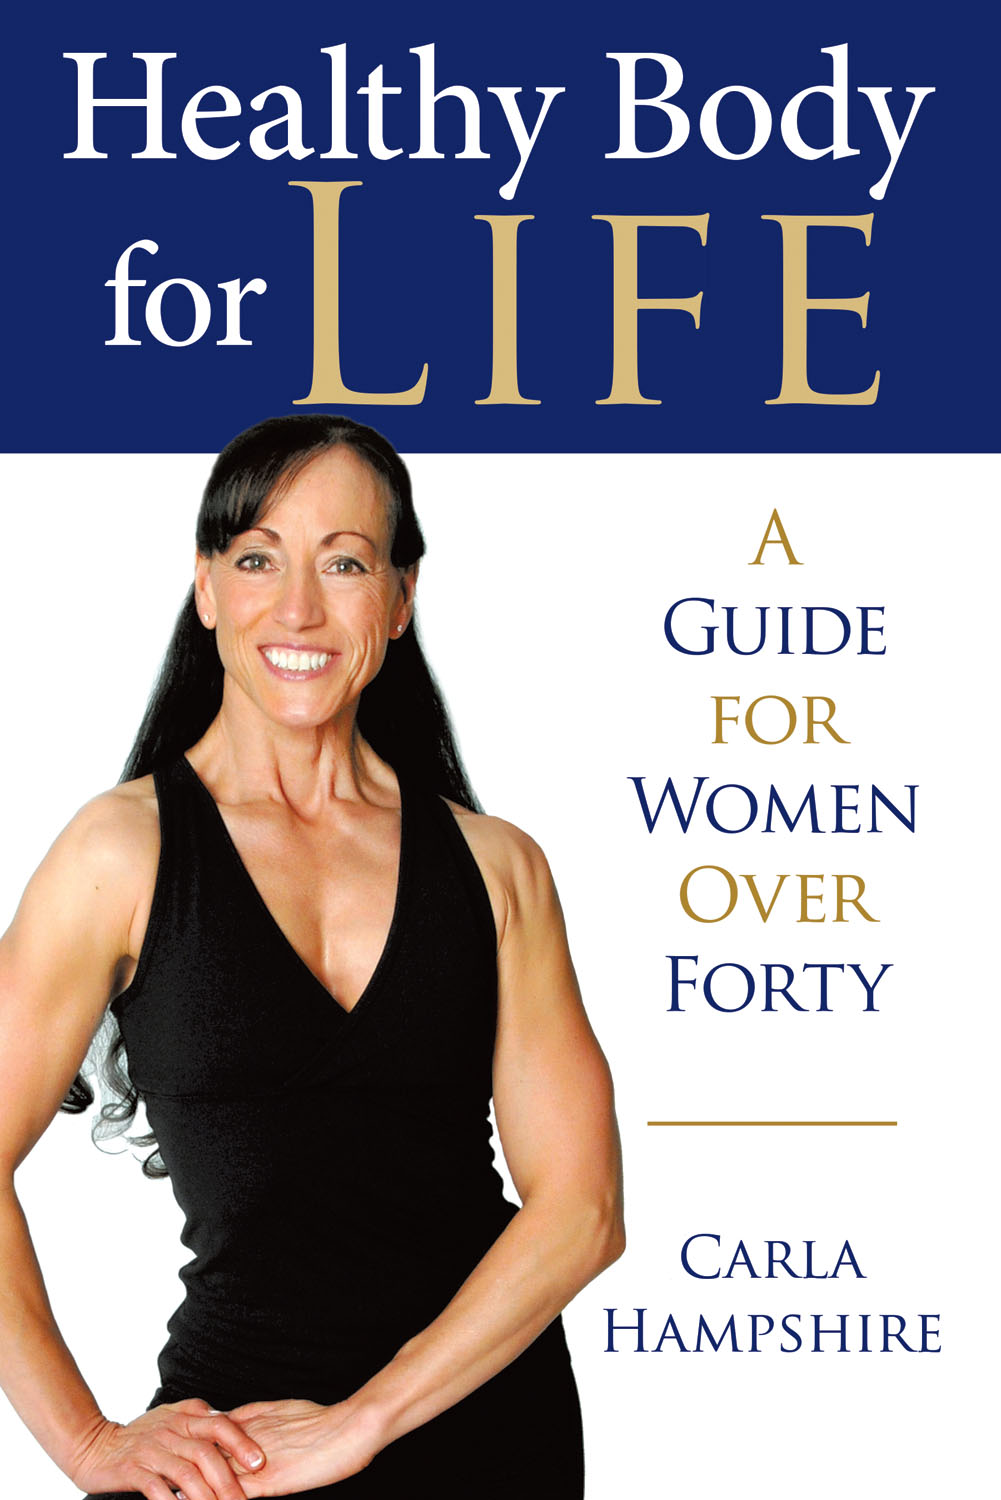 Healthy Body for Life A Guide for Women Over Forty